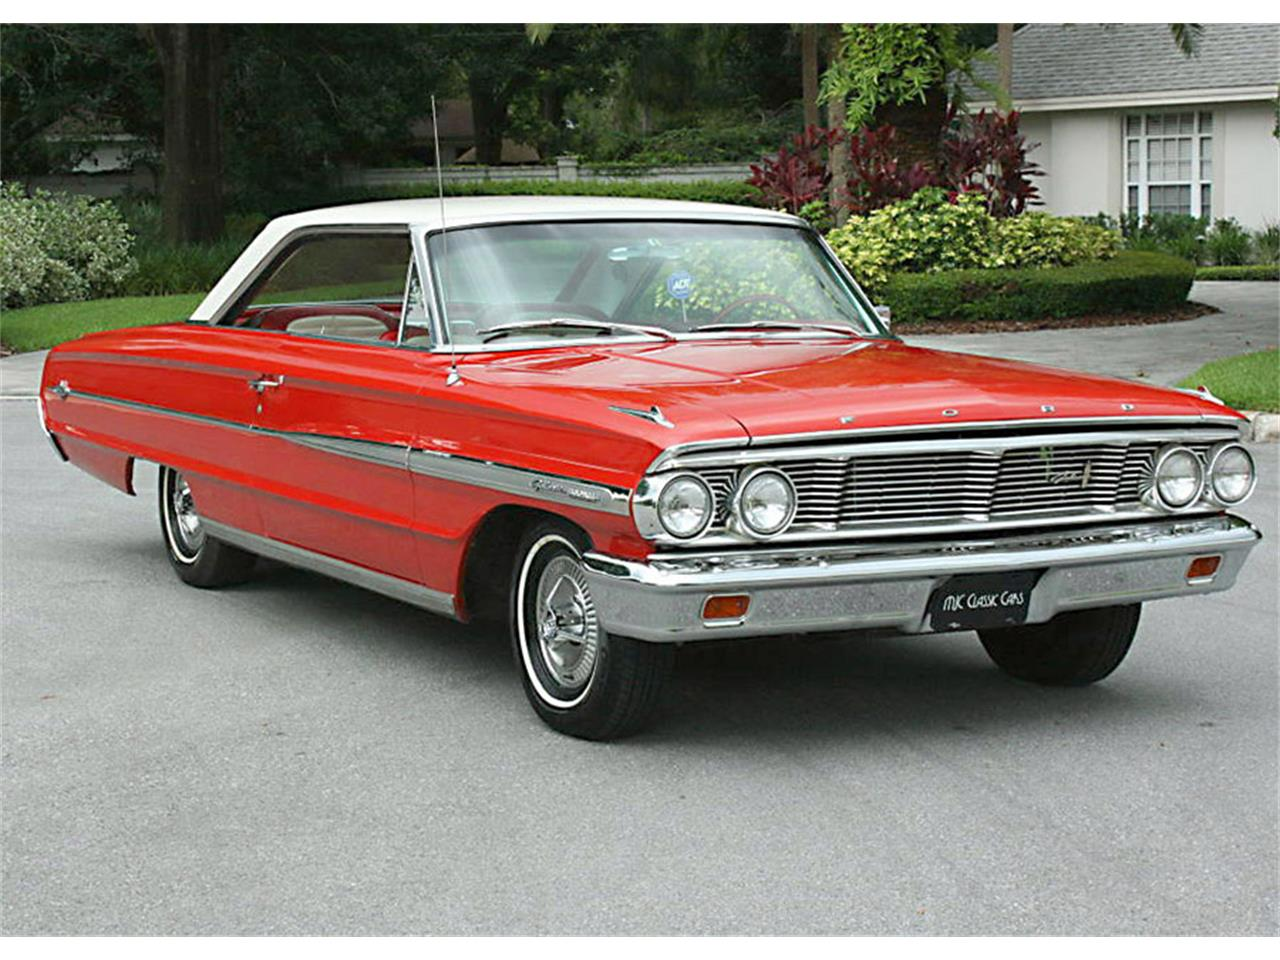 Large Picture of Classic '64 Ford Galaxie 500 - $27,500.00 Offered by MJC Classic Cars - NOH3